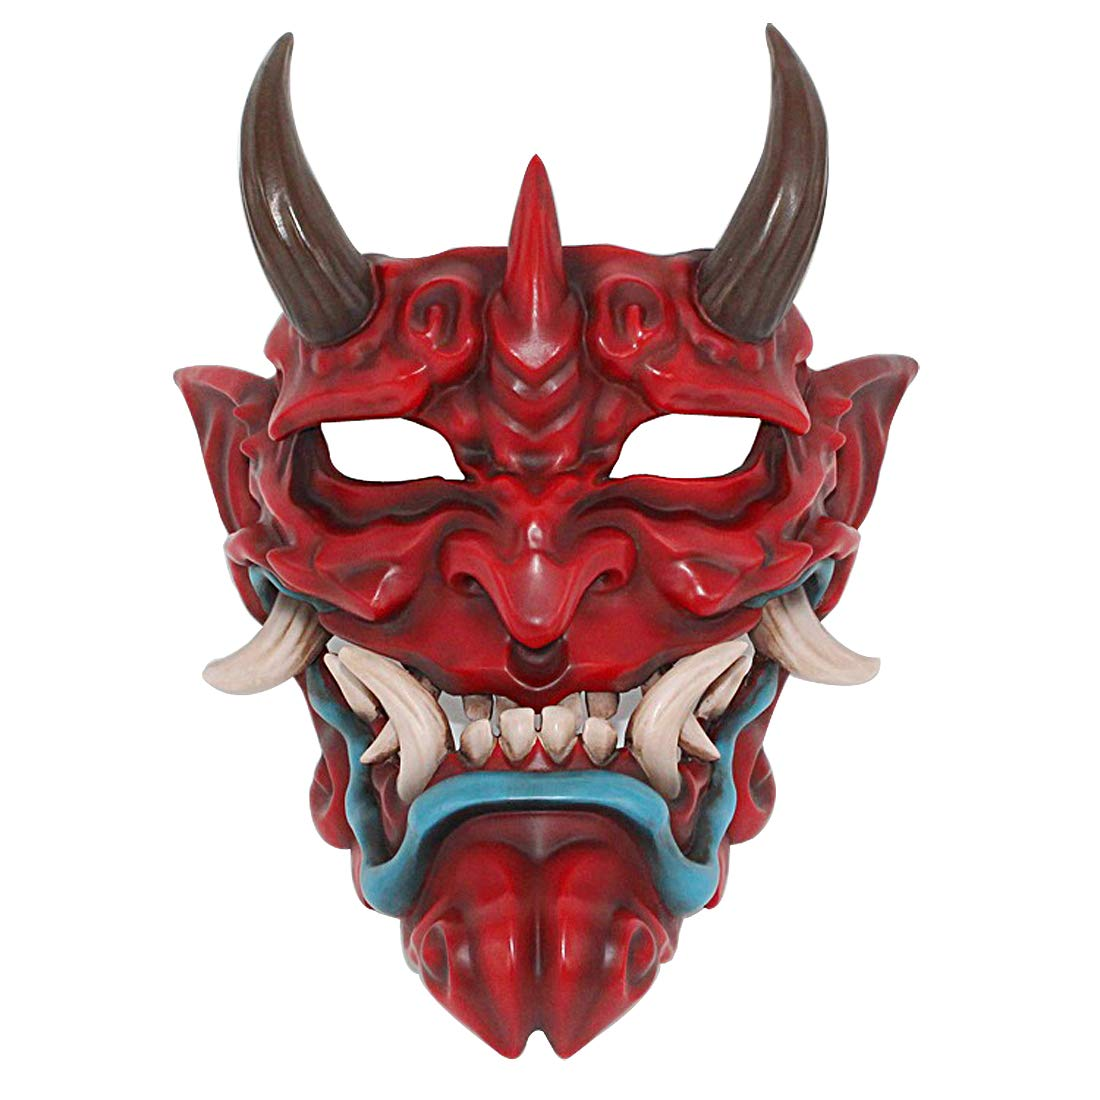 Hophen Scary Japanese Prajna Grimace Tooth Halloween Mask Costume Collectible Wall Hanging Mask (Red)